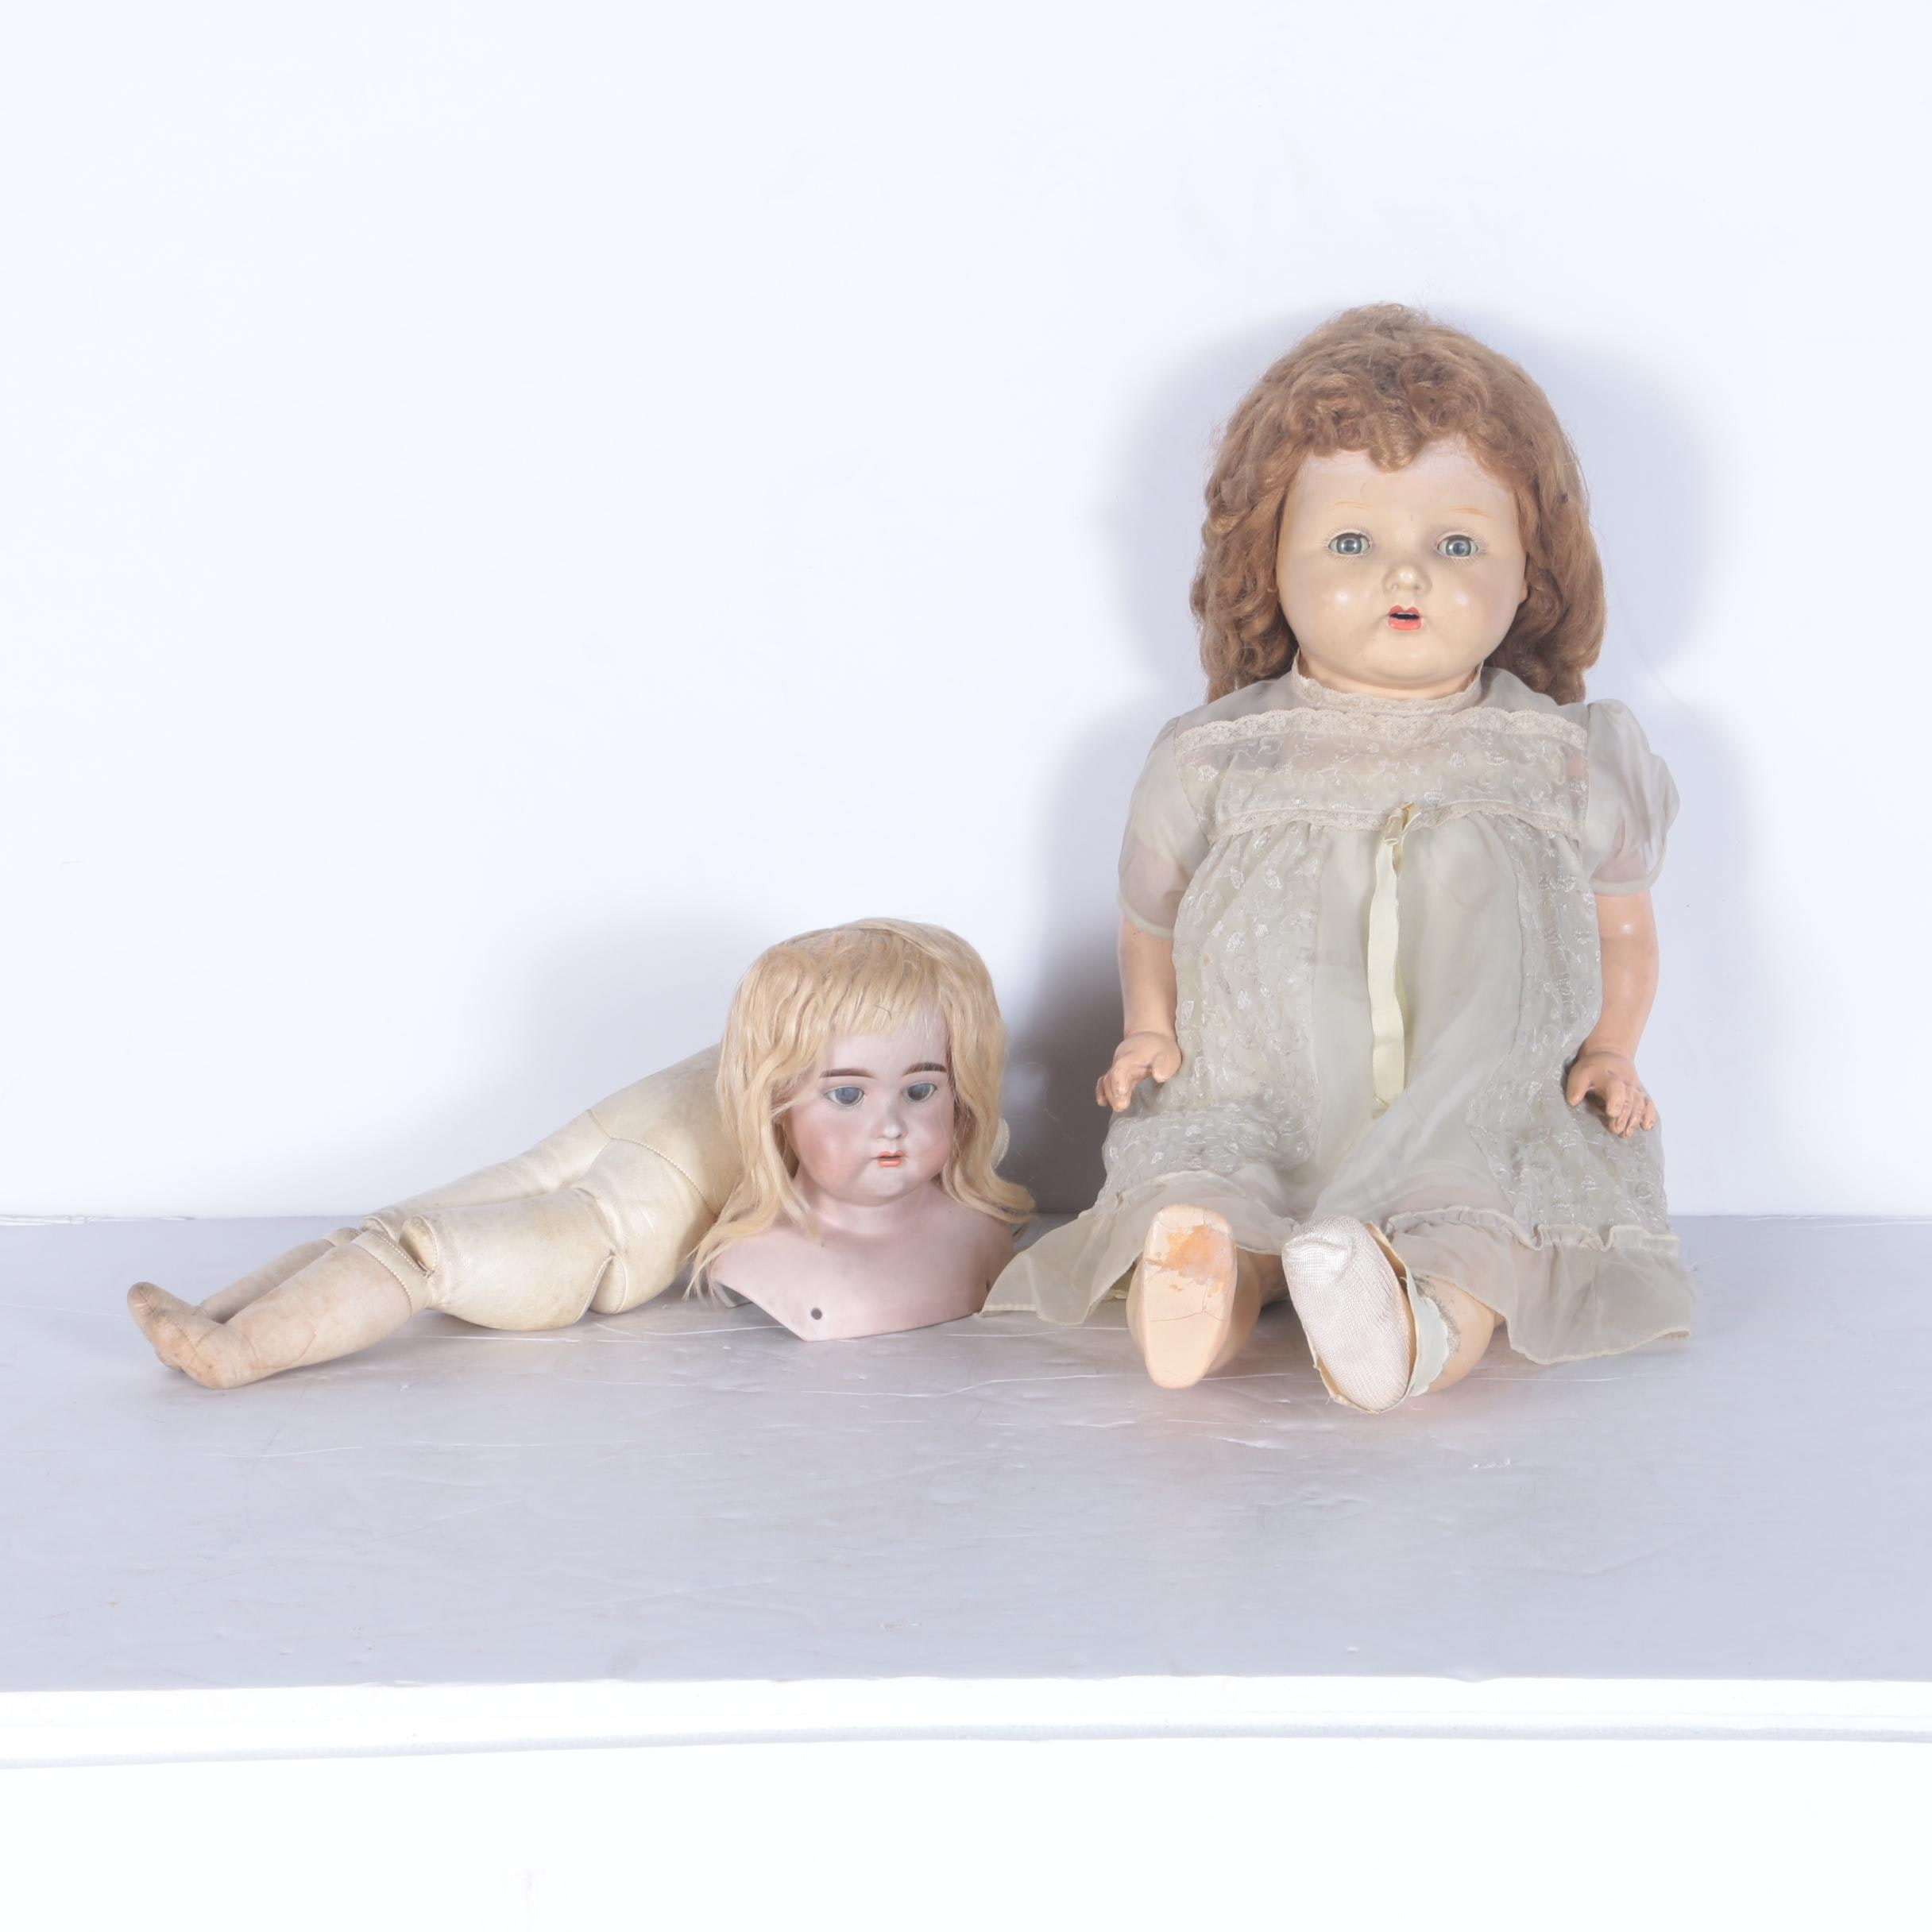 Antique Bisque Shoulder Doll and Vintage Composition Baby Doll